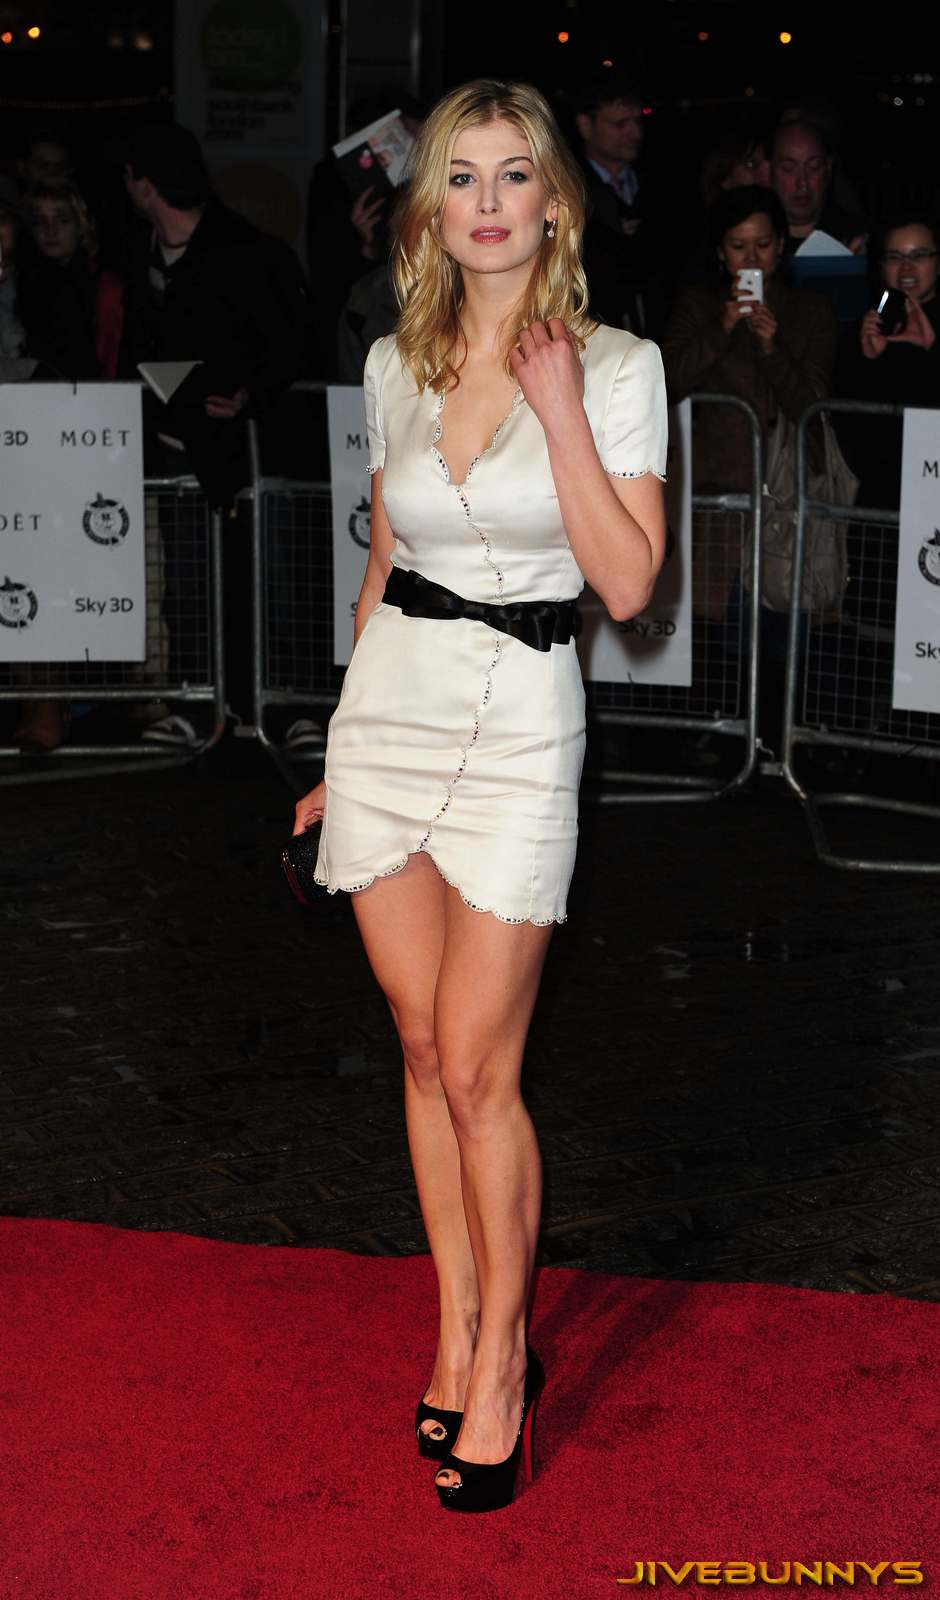 rosamund pike special pictures 4 film actresses